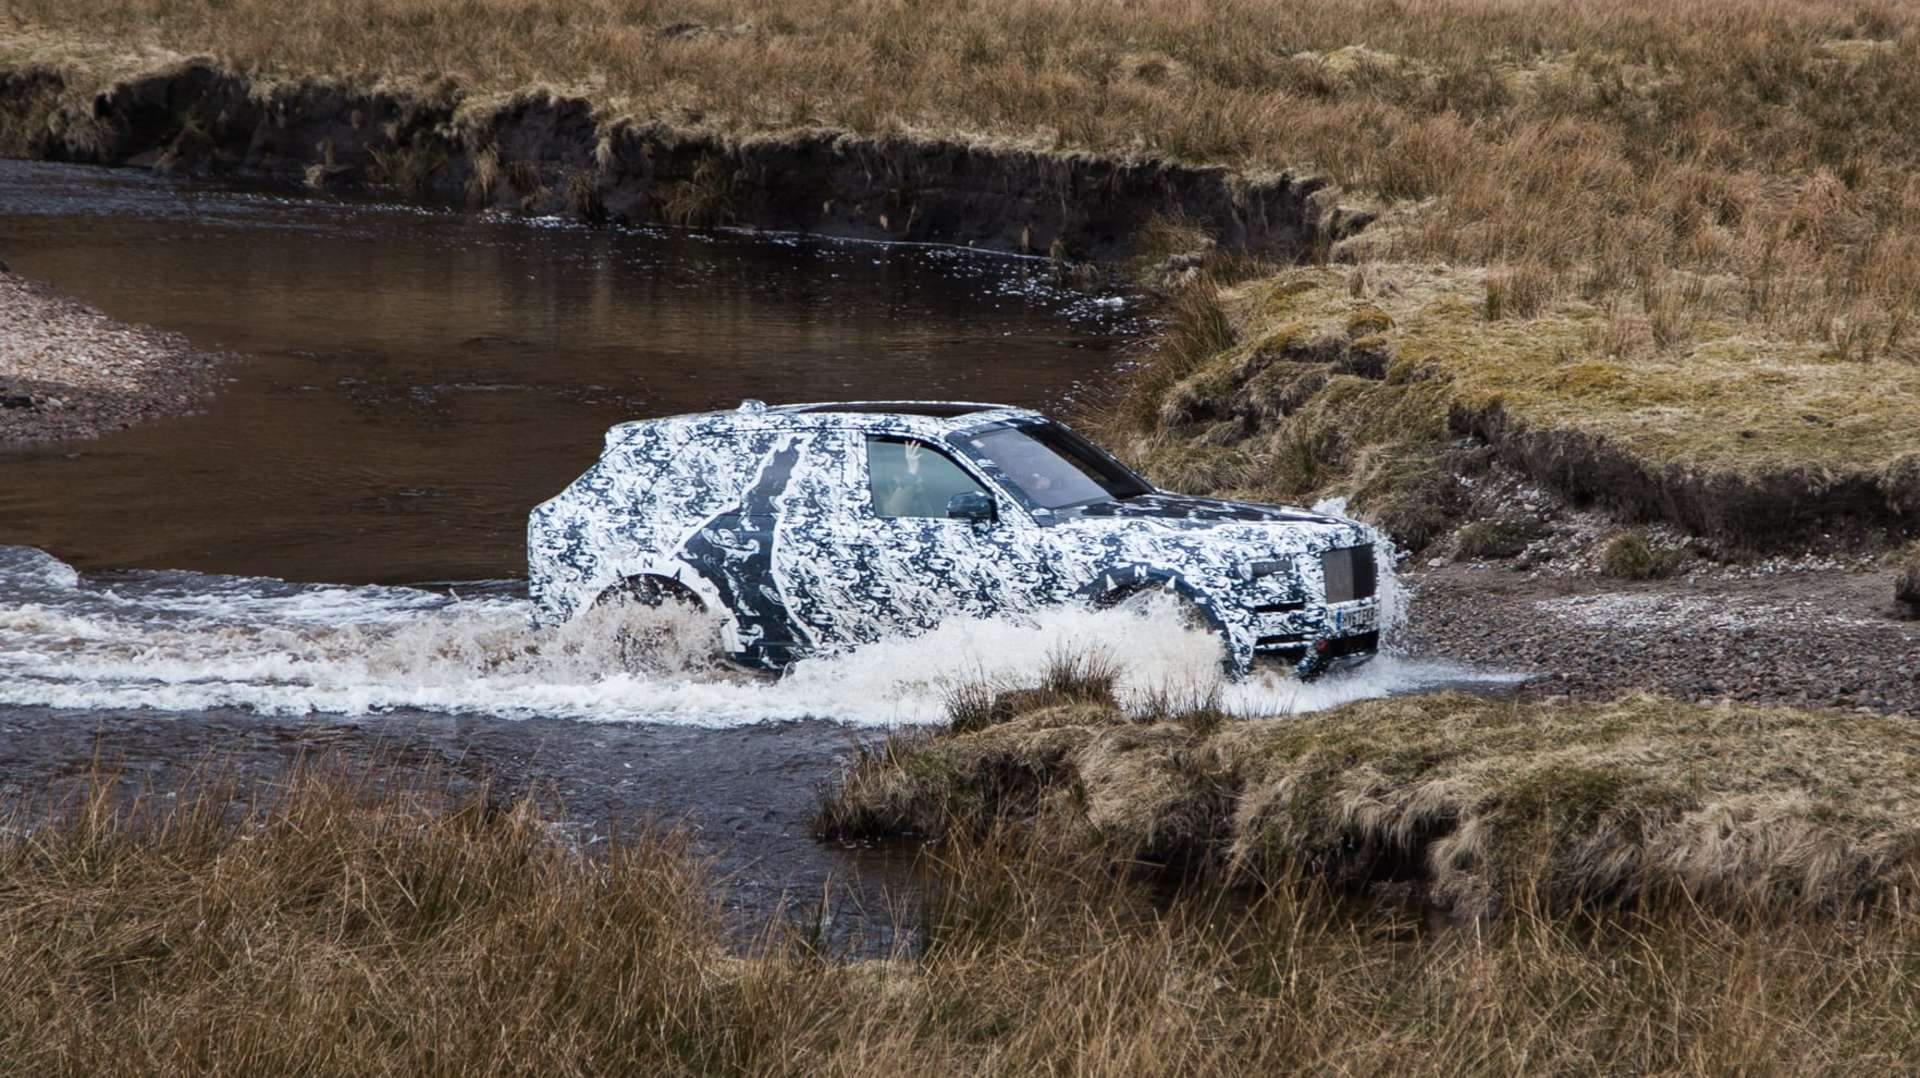 A Rolls-Royce Cullinan motor car driving through shallow water